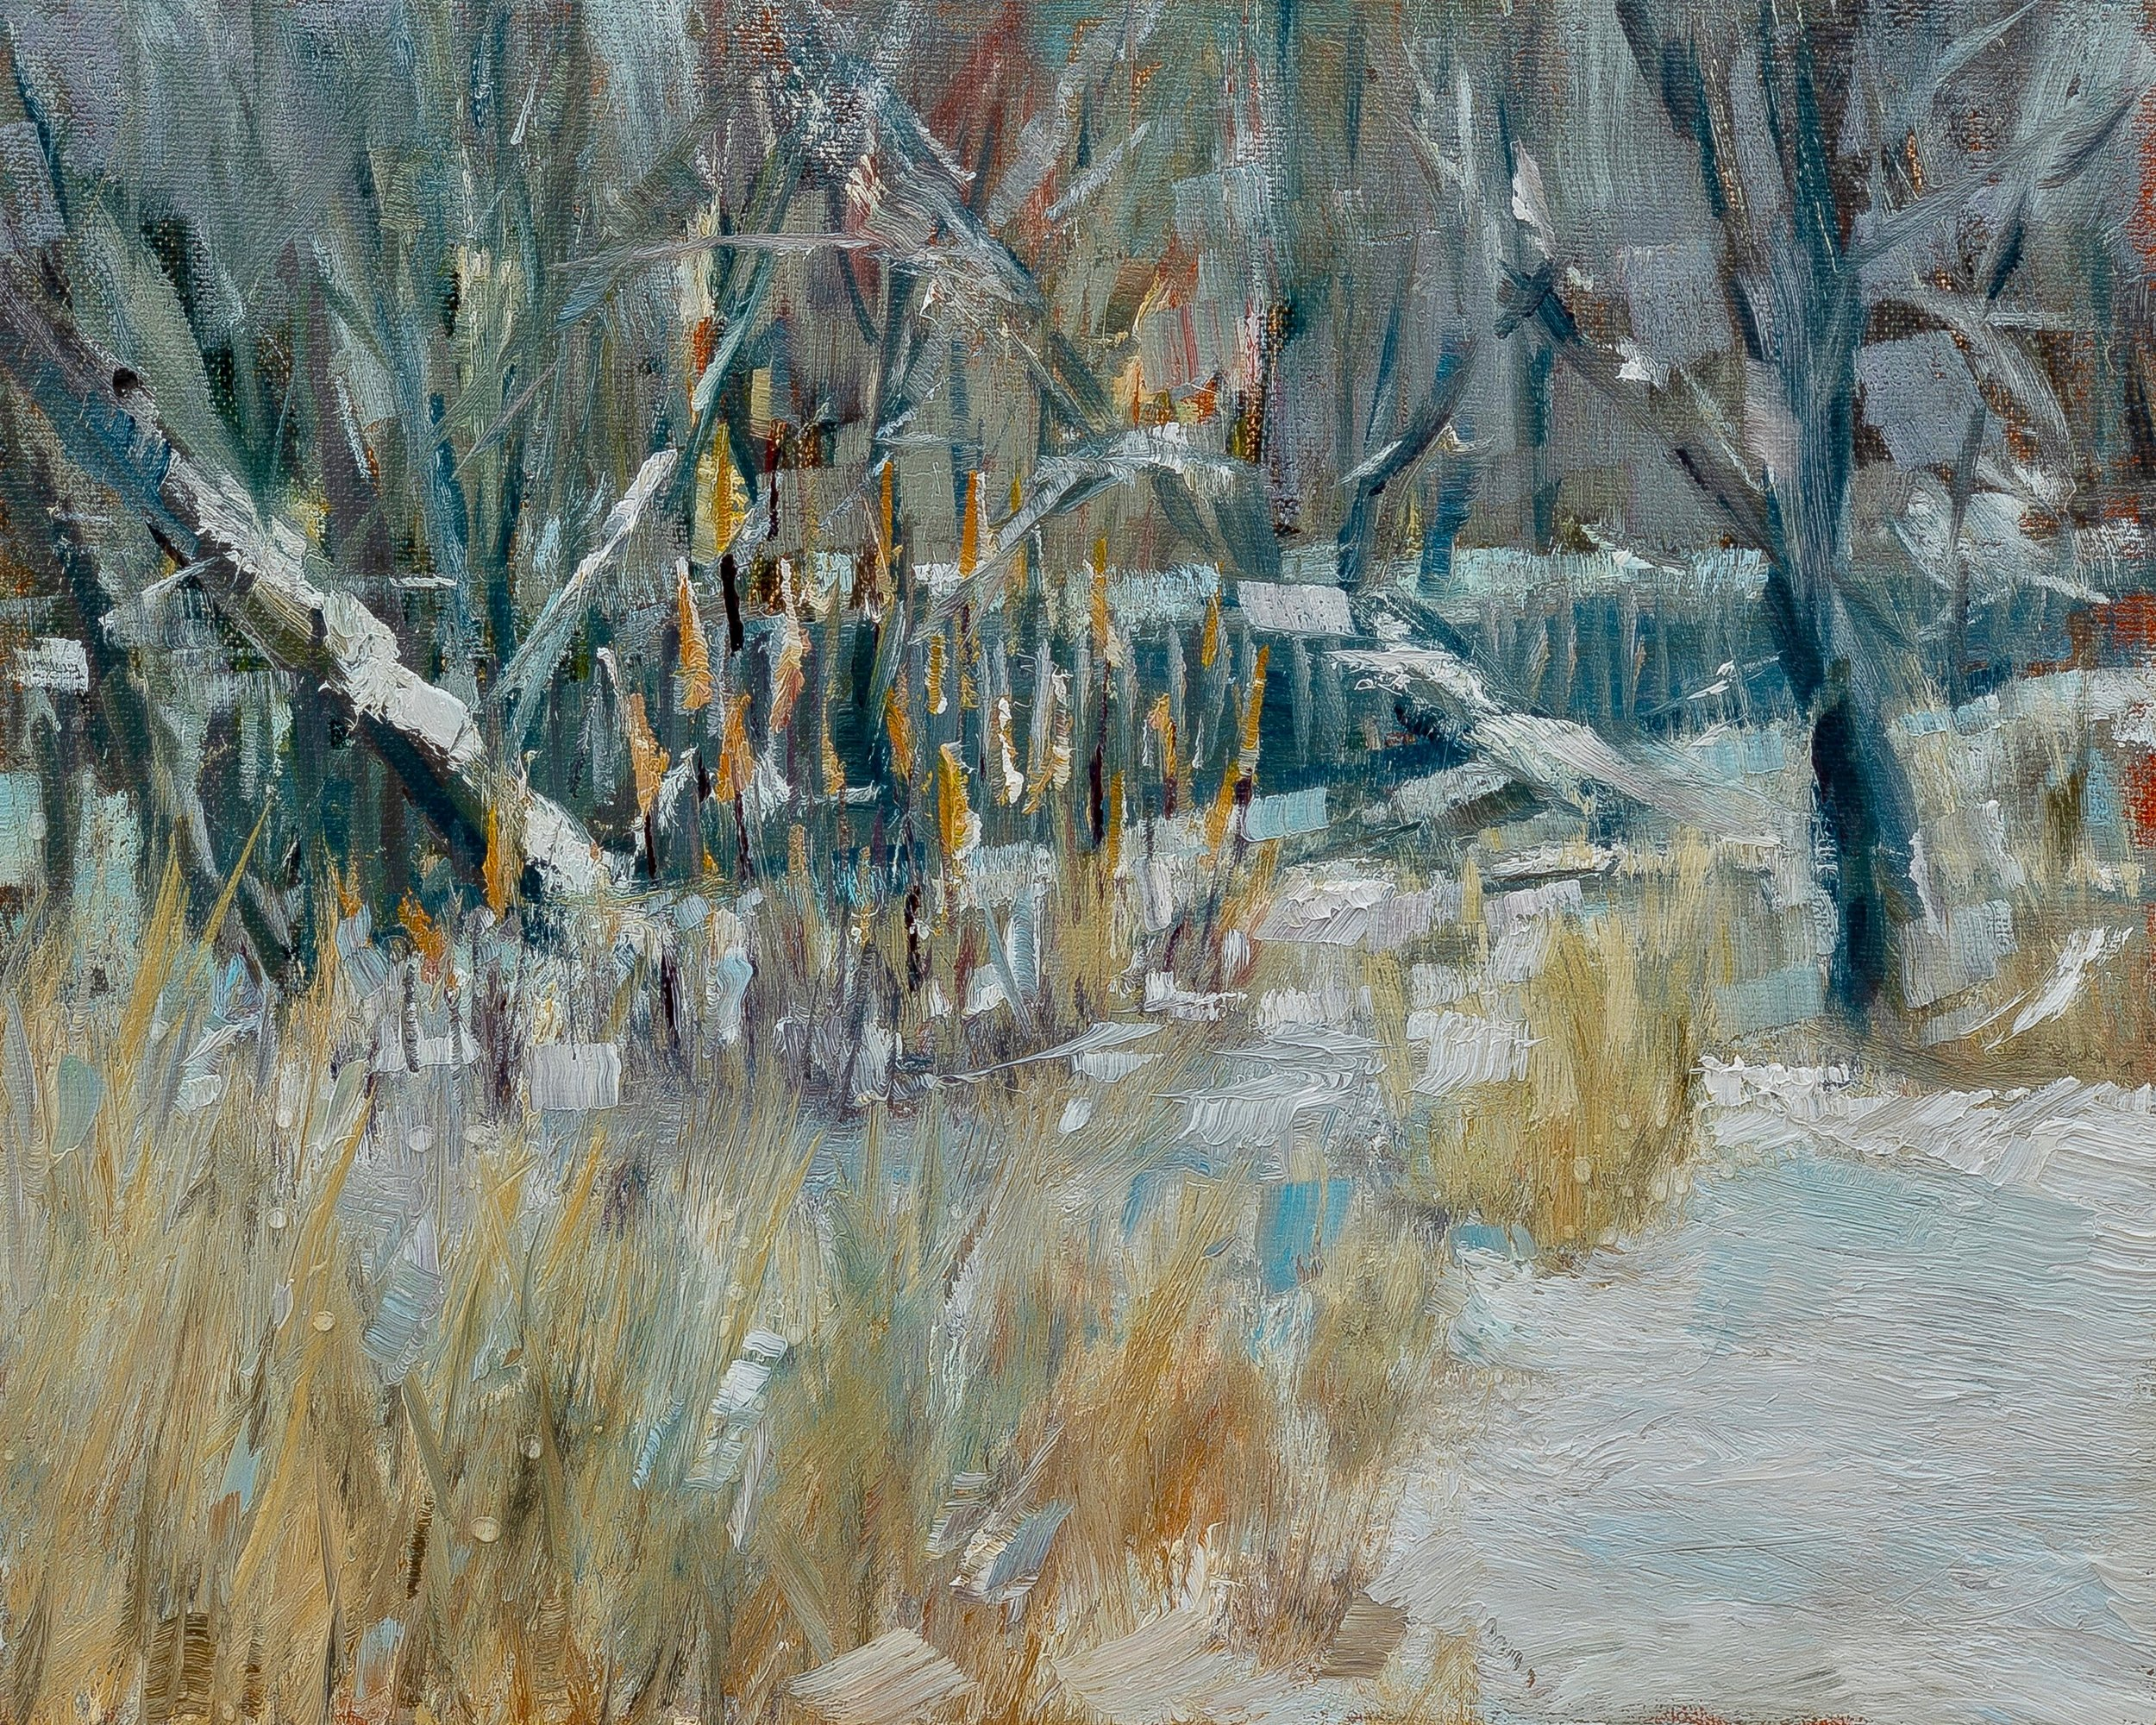 Plein air oil on panel, 8 by 10 inches